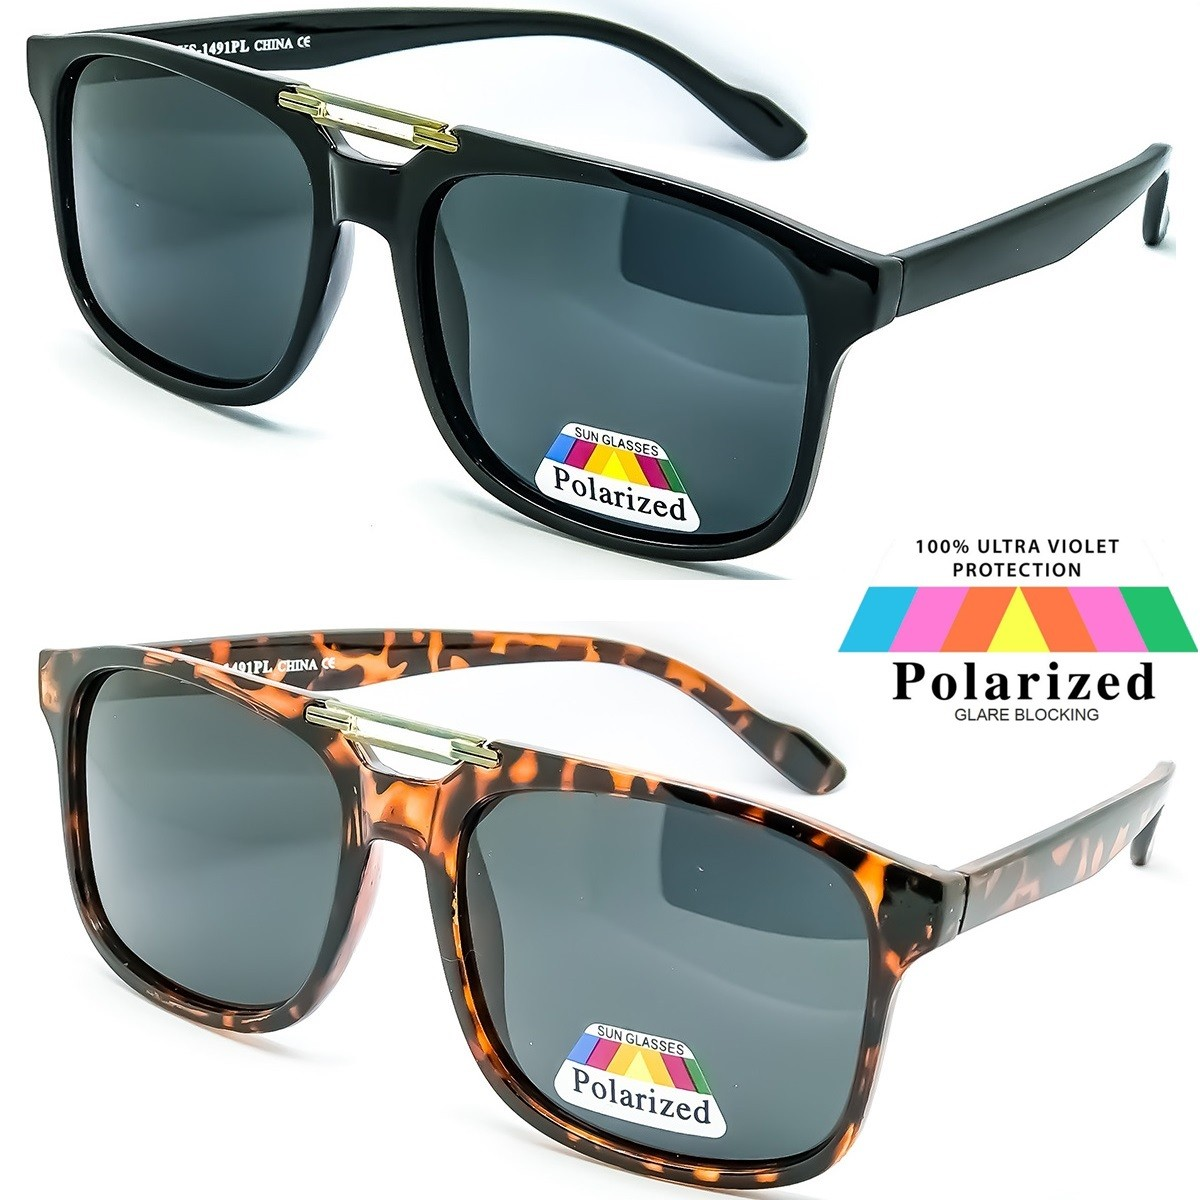 Occhiali da sole POLARIZZATI KISS® - mod. MCQUEEN 'CULT V1' - uomo donna MOVIE STAR stile aviatore VINTAGE